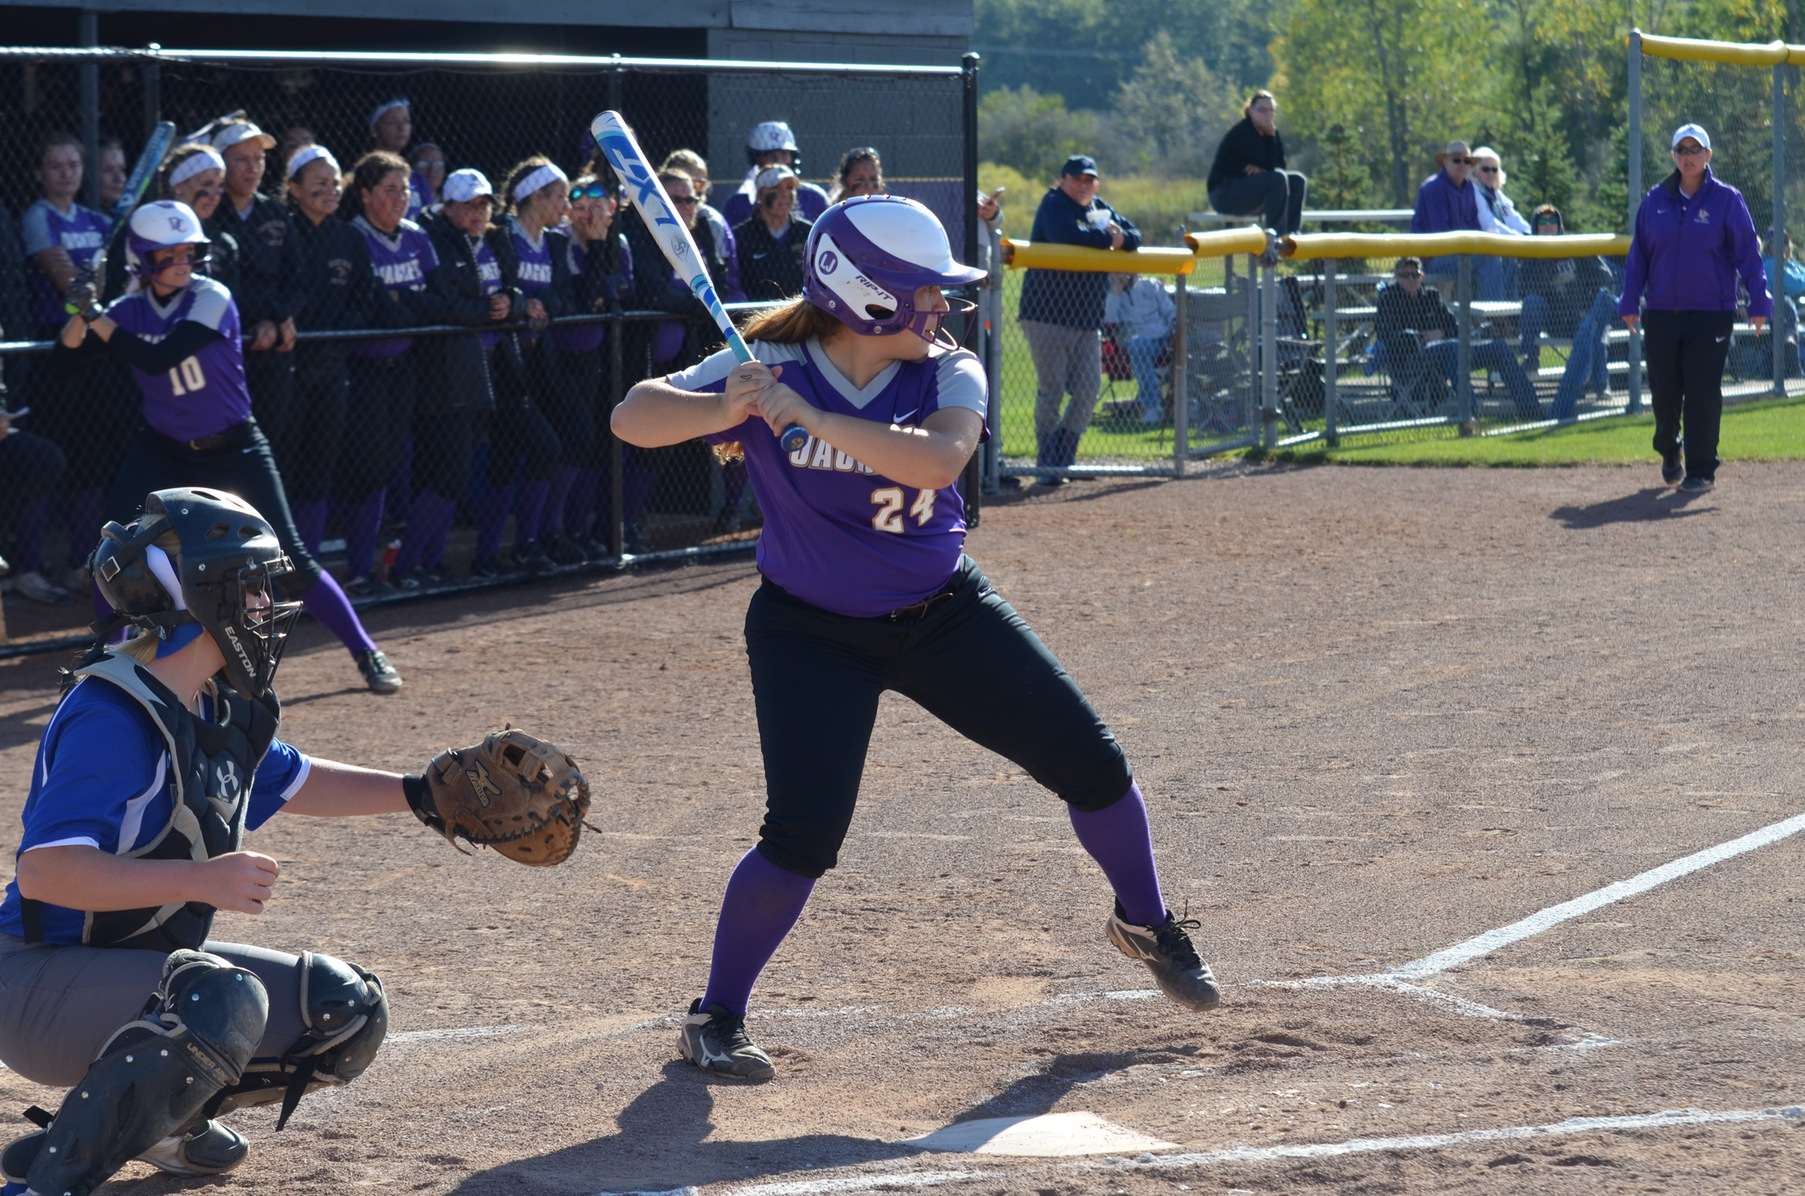 Perry Leads DC in Hanover Sweep, Clinching HCAC Tournament Bid